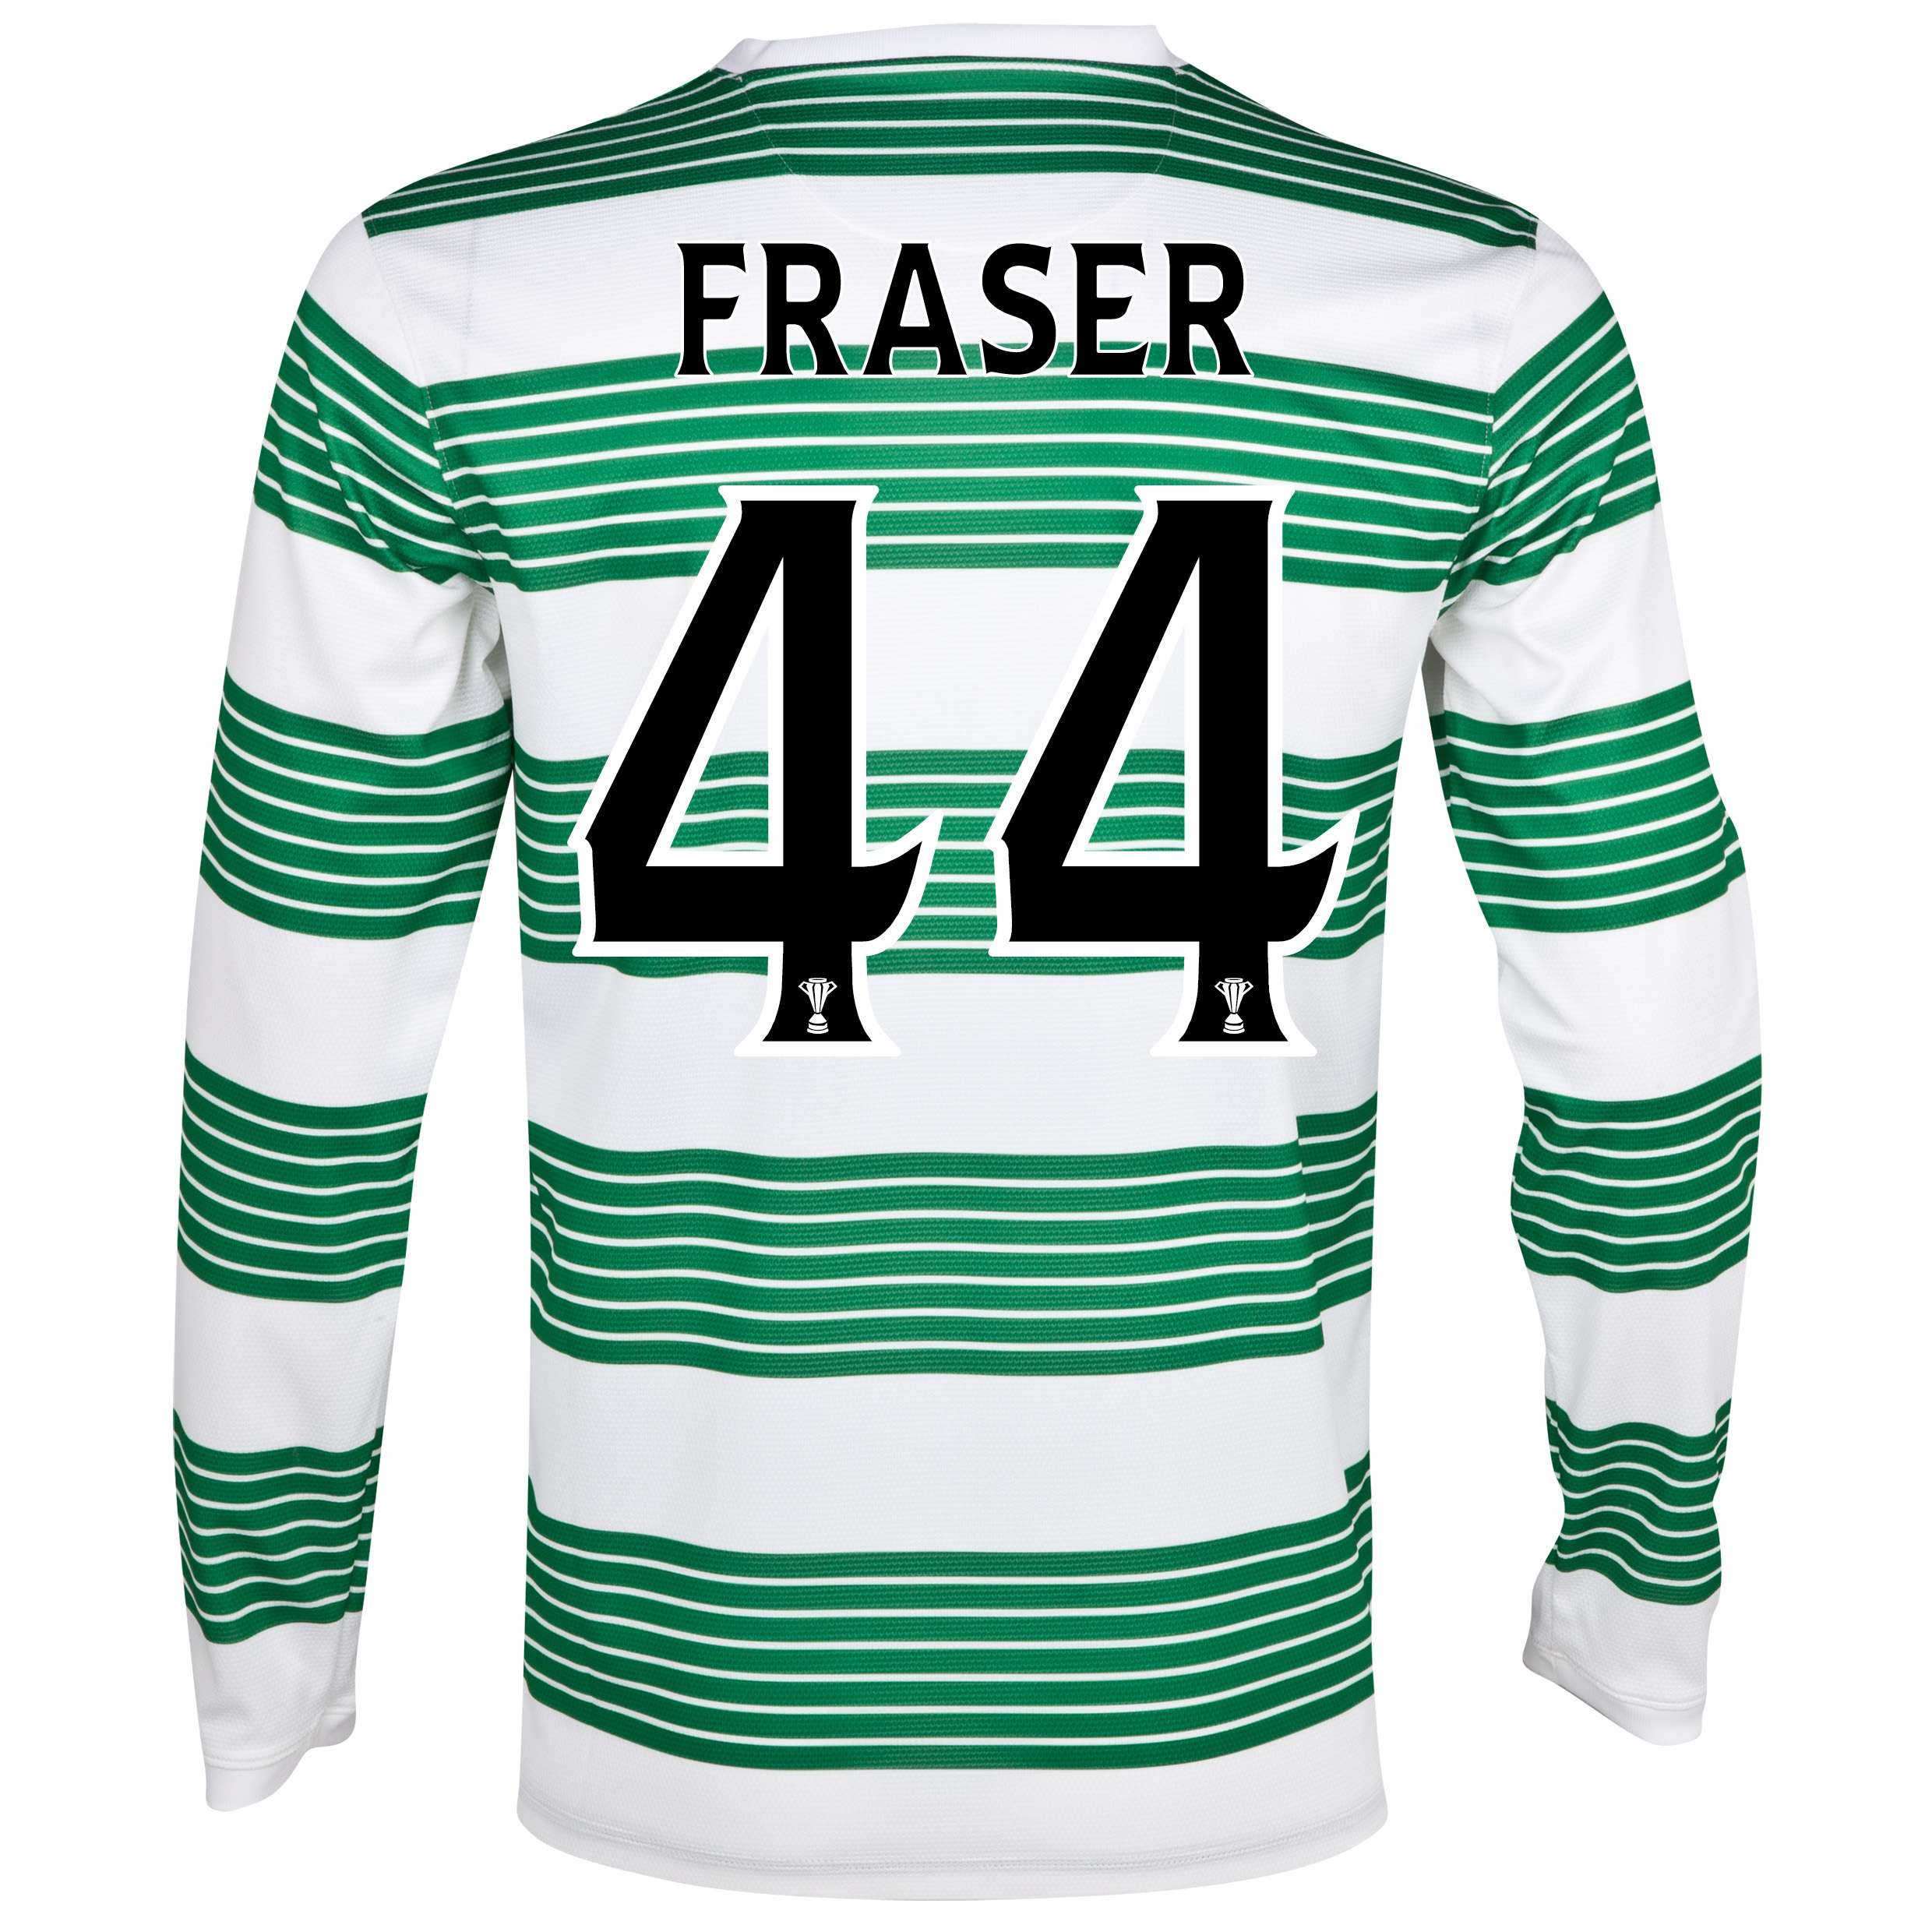 Celtic Home Shirt 2013/15 - L/S- With Sponsor with Fraser 44 printing